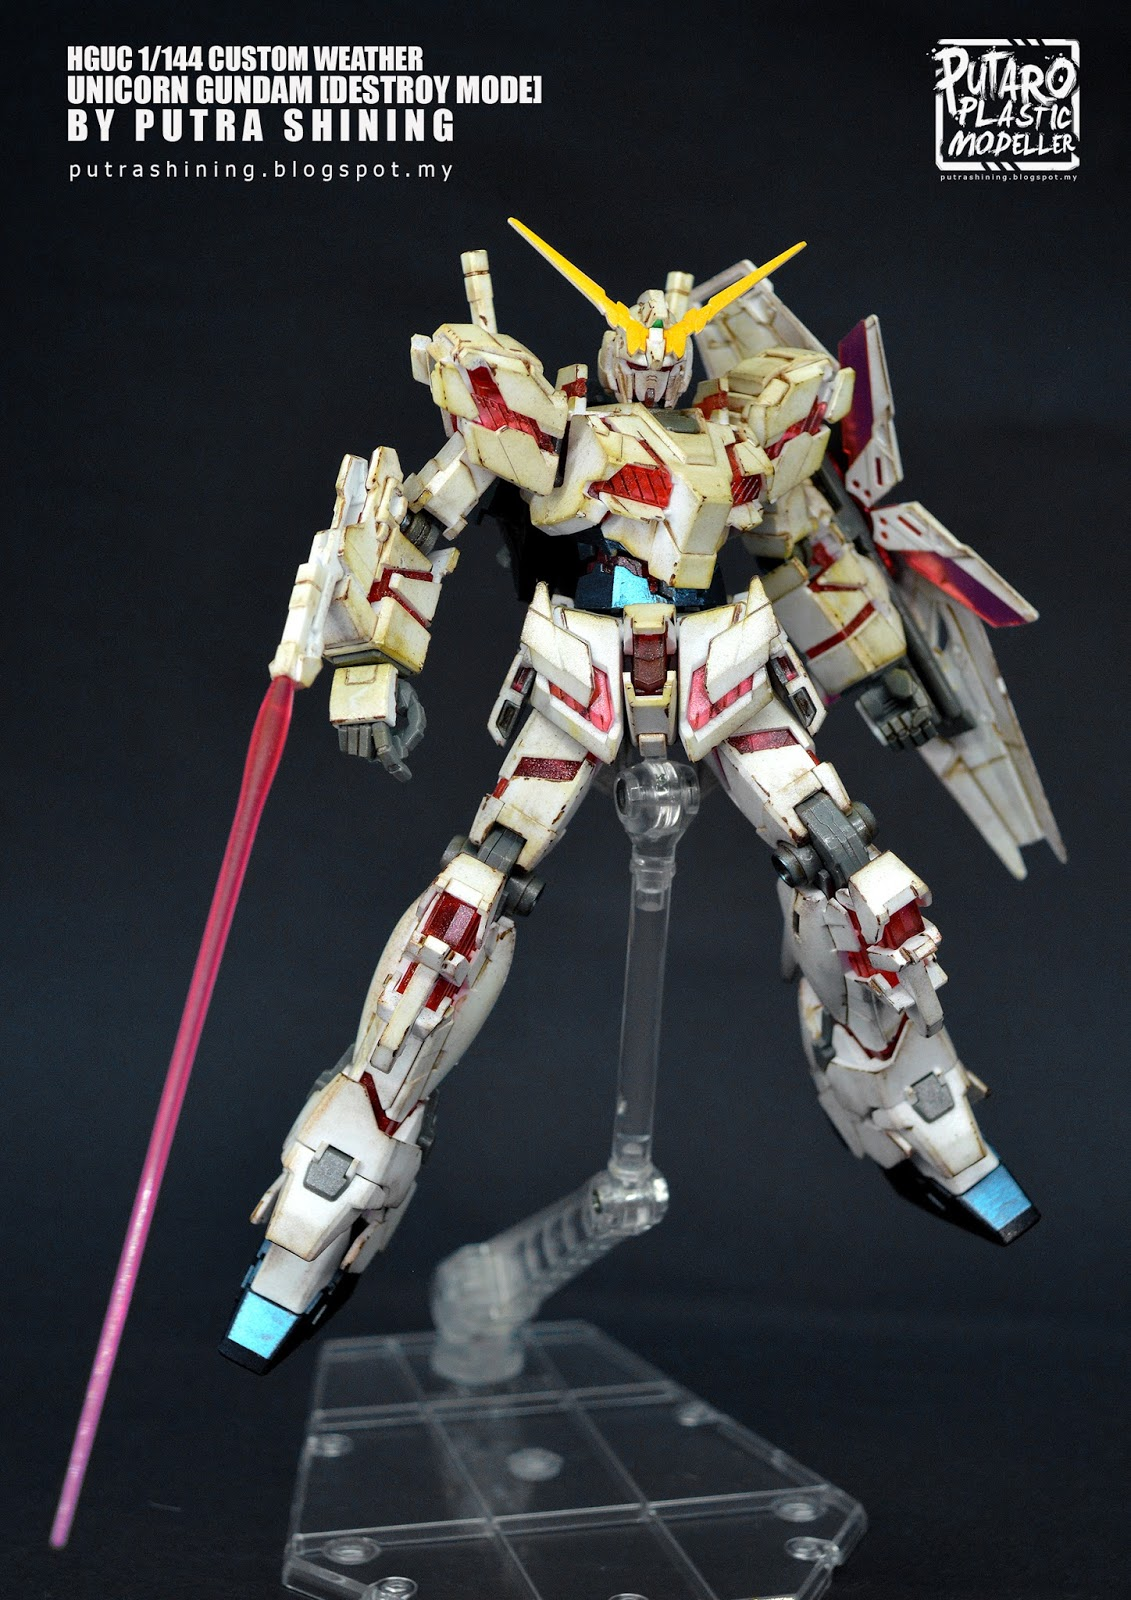 1/144 HGUC RX-0 UNICORN GUNDAM [DESTROY MODE] by Putra Shining